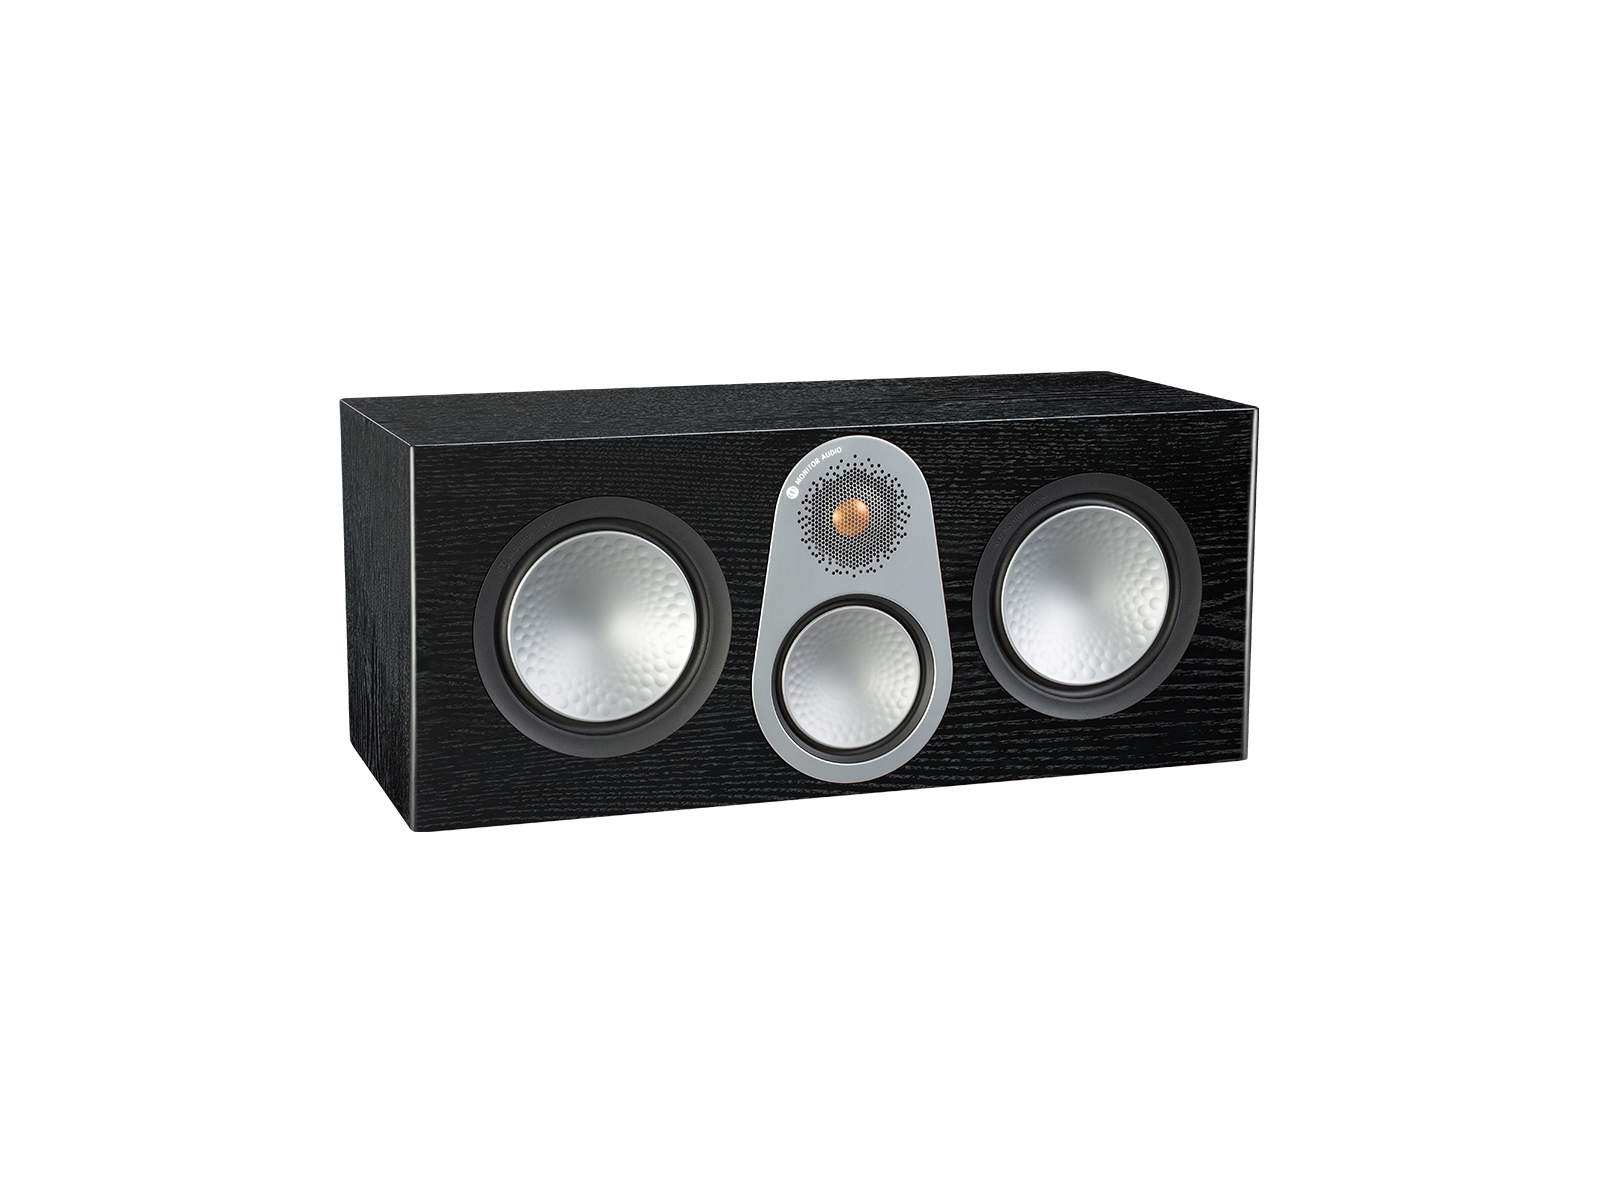 Silver C350, grille-less centre channel speakers, with a black oak finish.